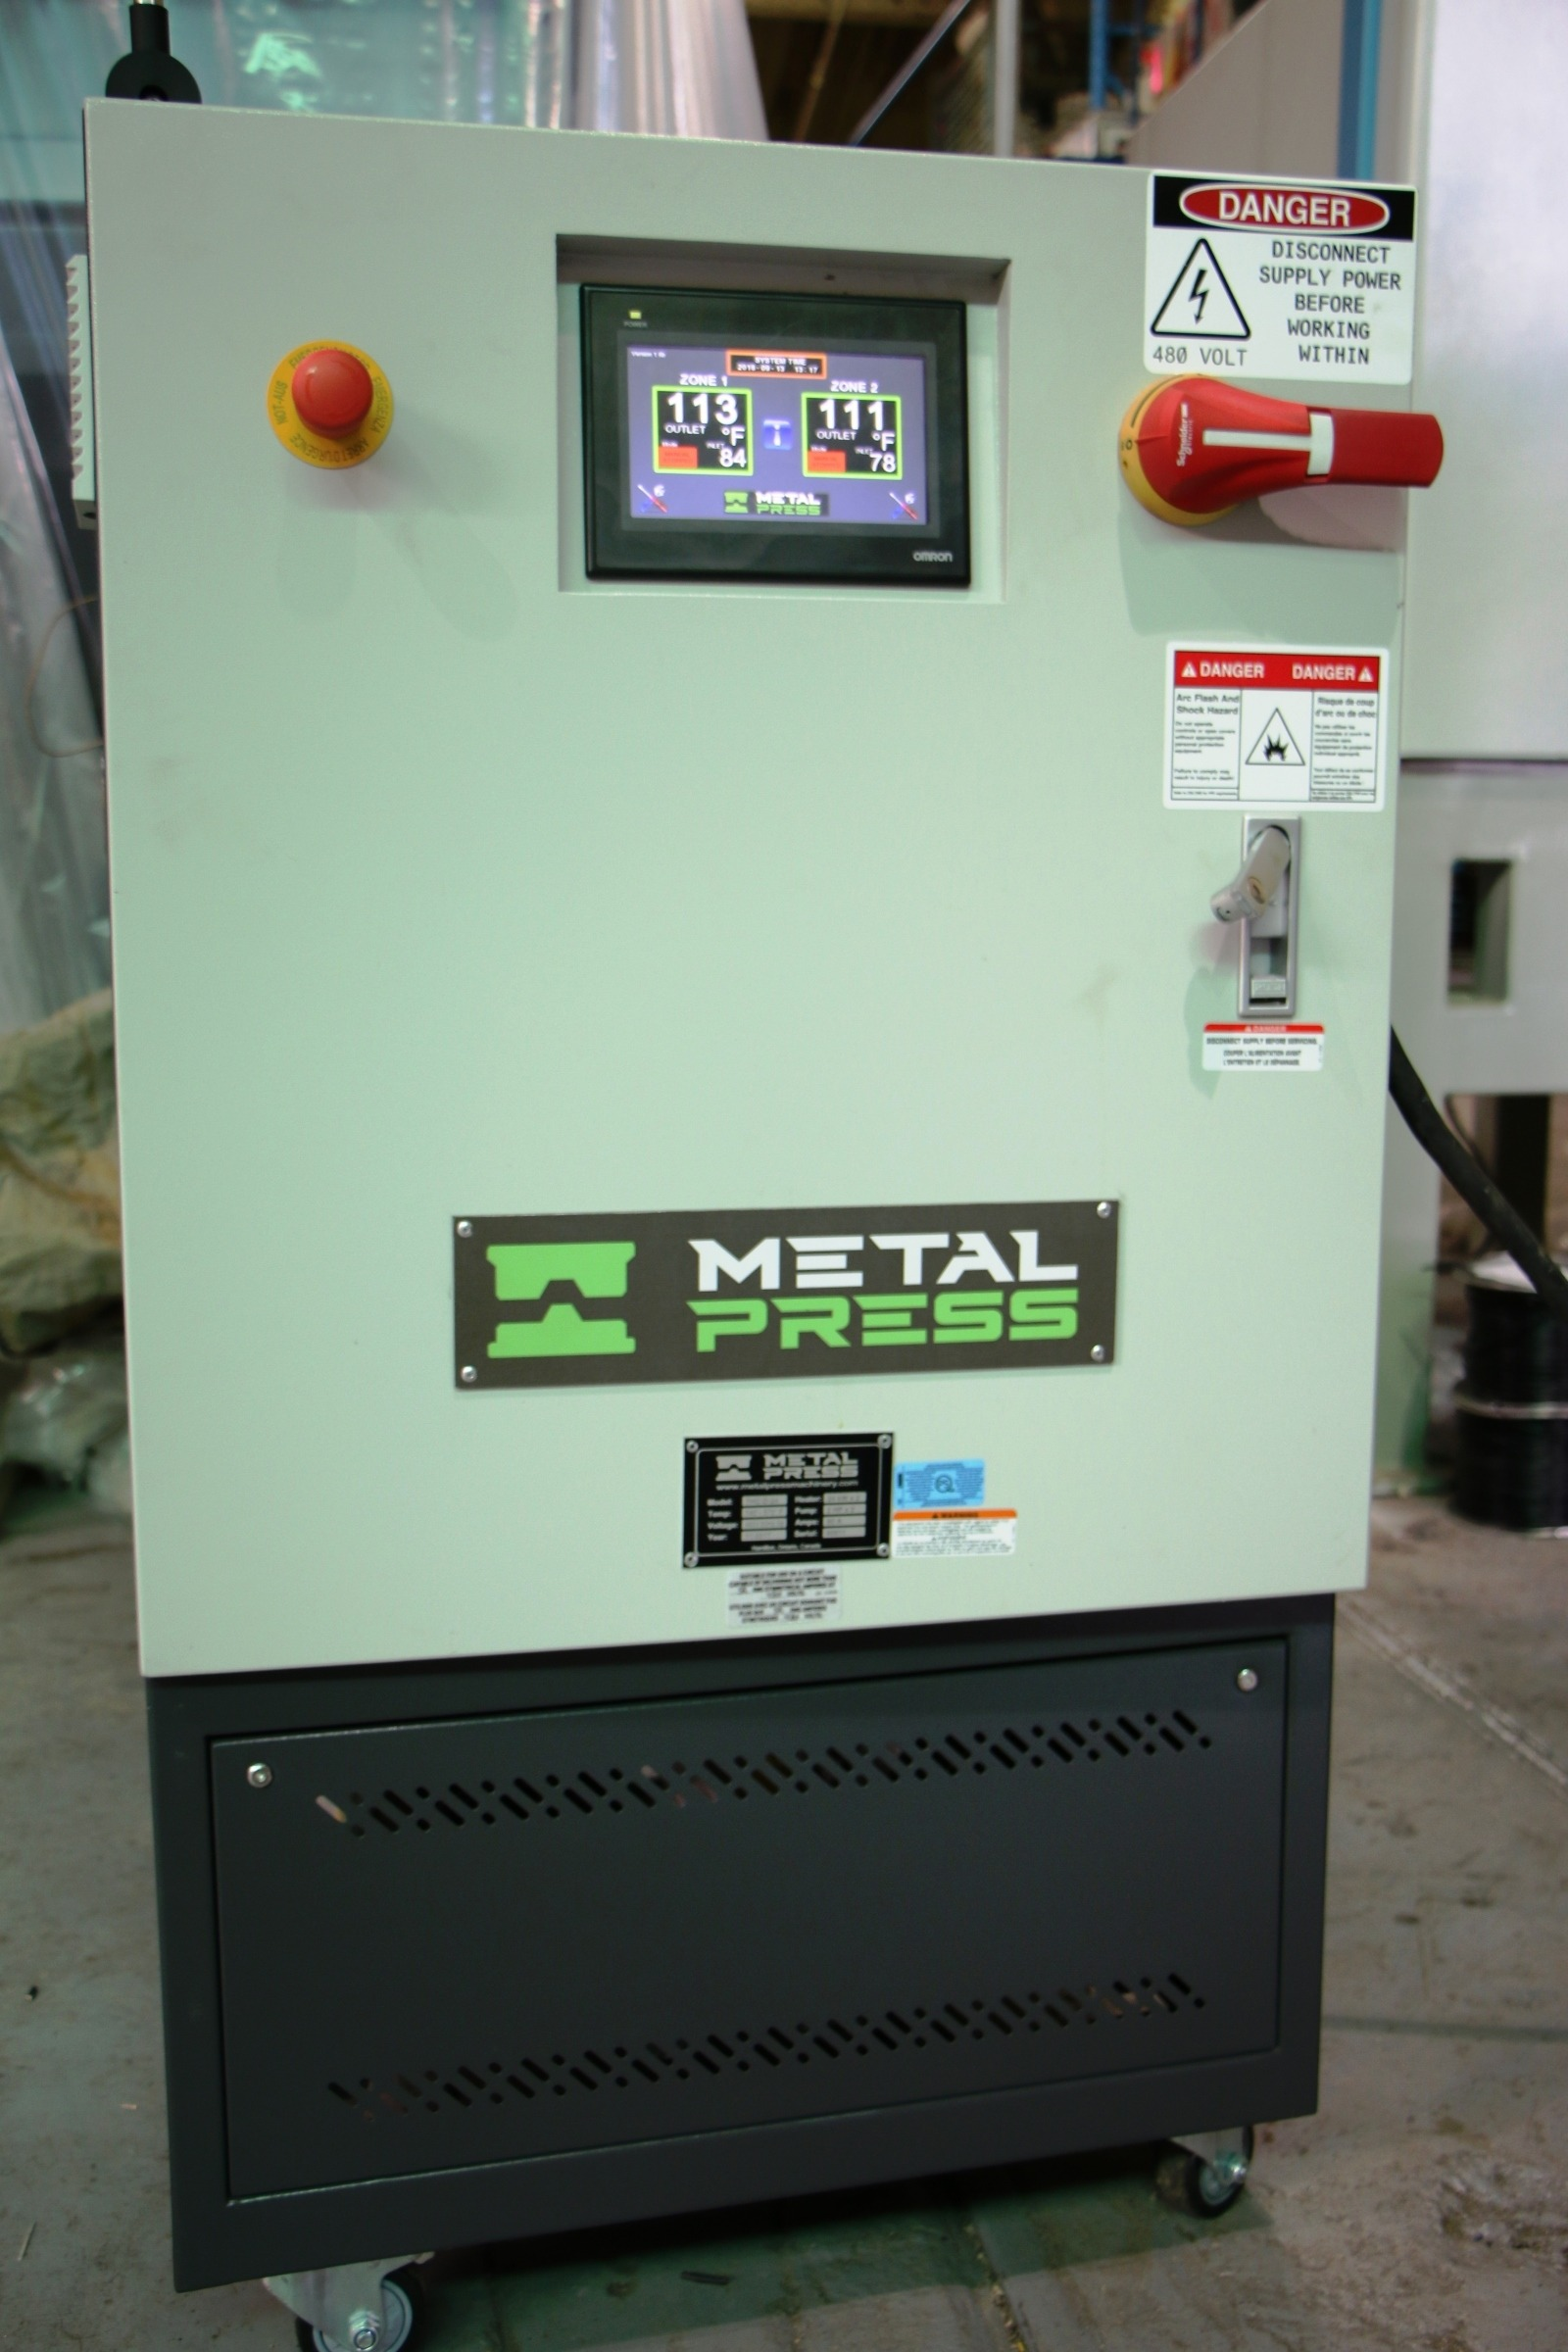 New MetalPress Hot Oil Temperature Control Unit #4721